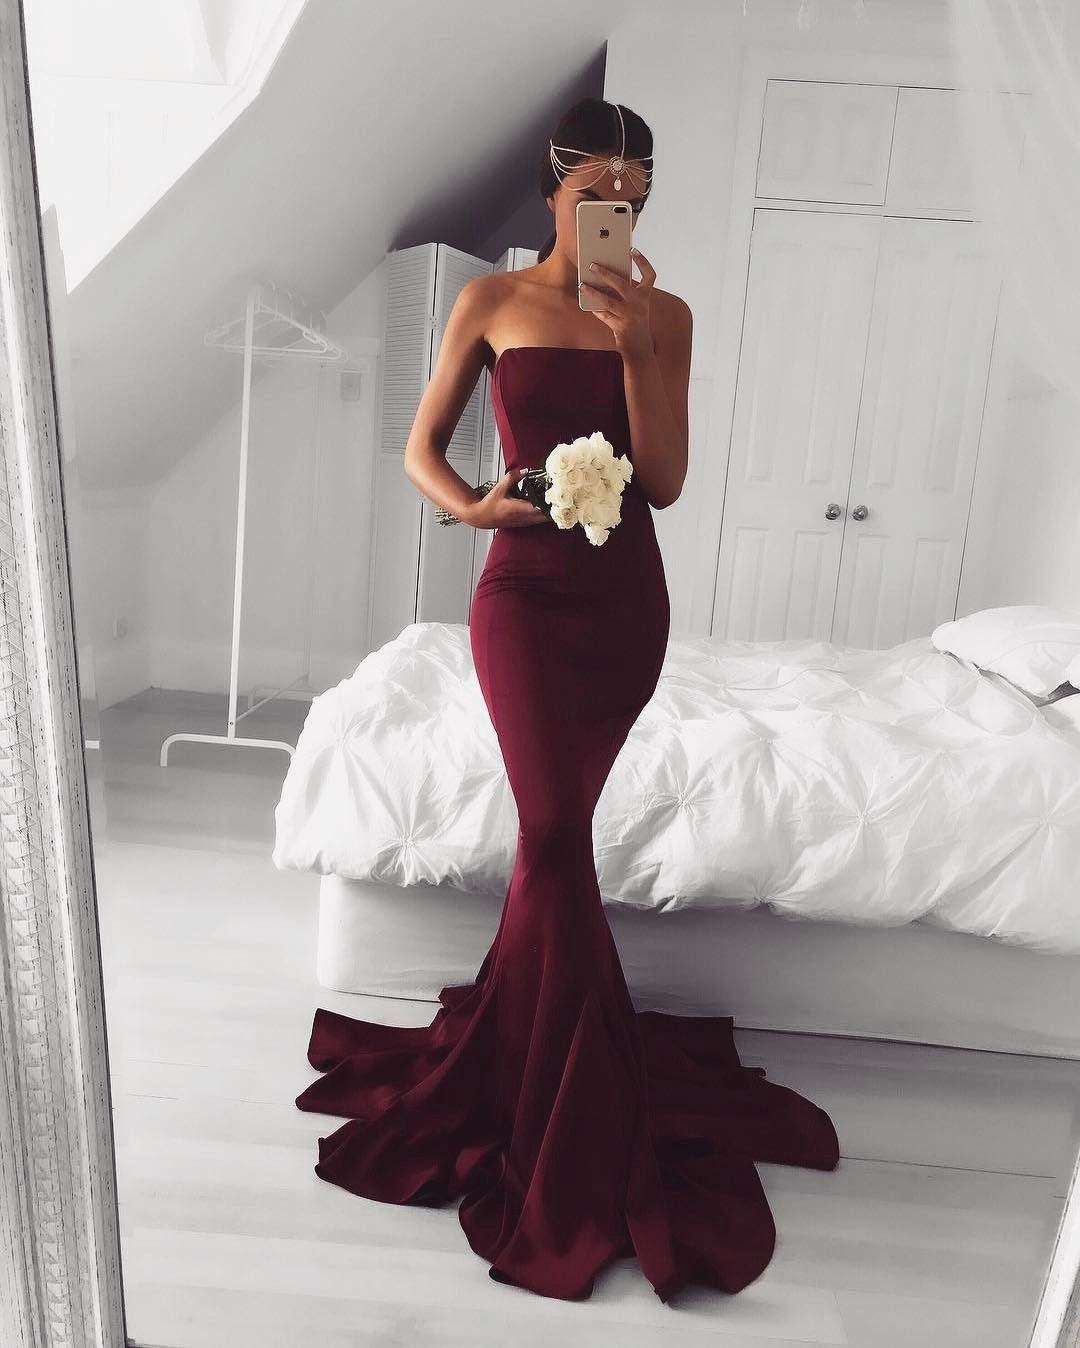 2017 Prom Dress, Sexy Mermaid Burgundy Prom Dress, | Wedding ...